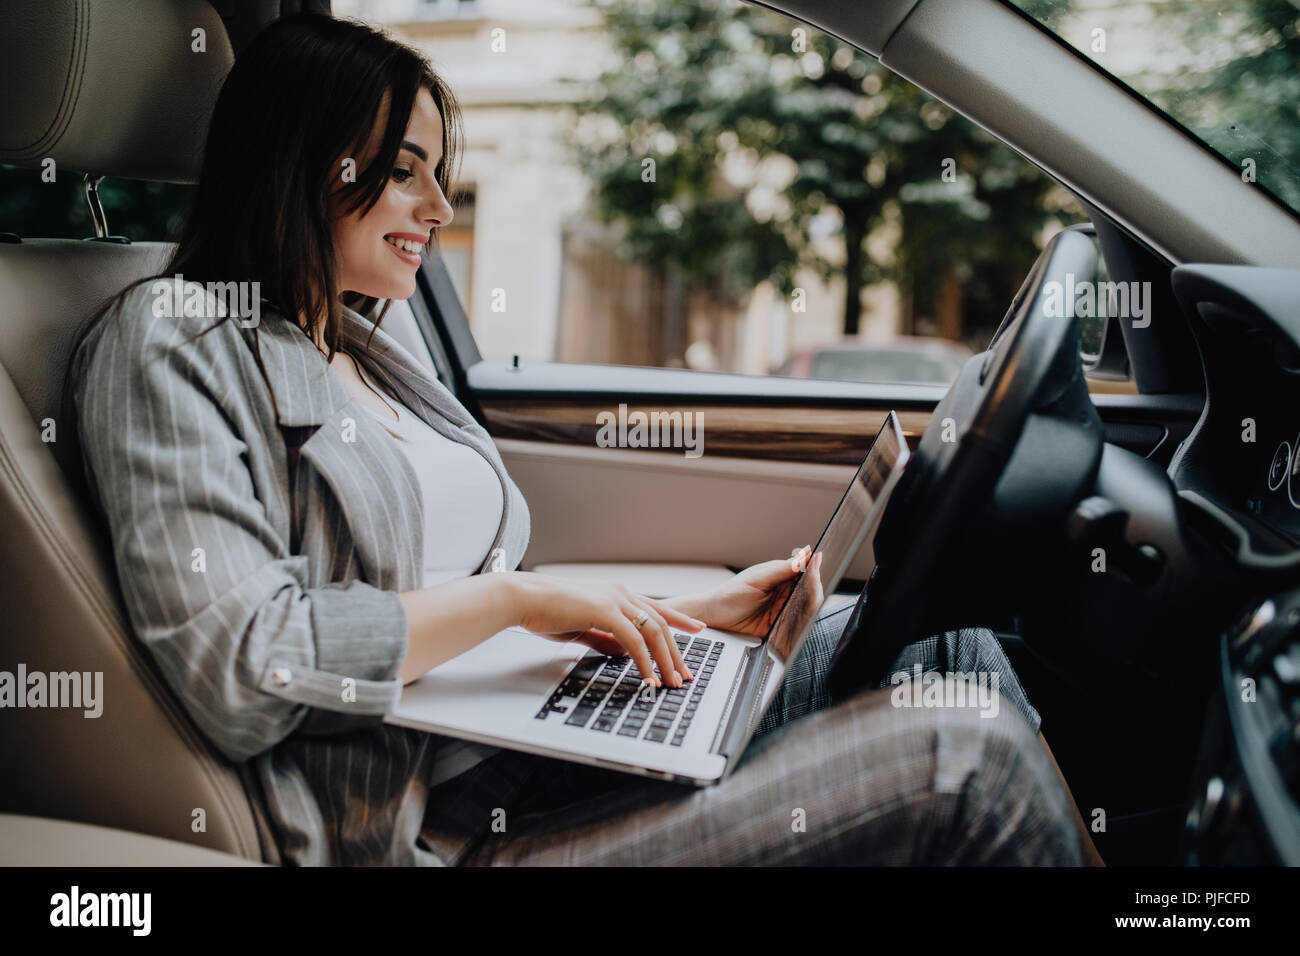 Businesswoman with a laptop in her car - Stock Image